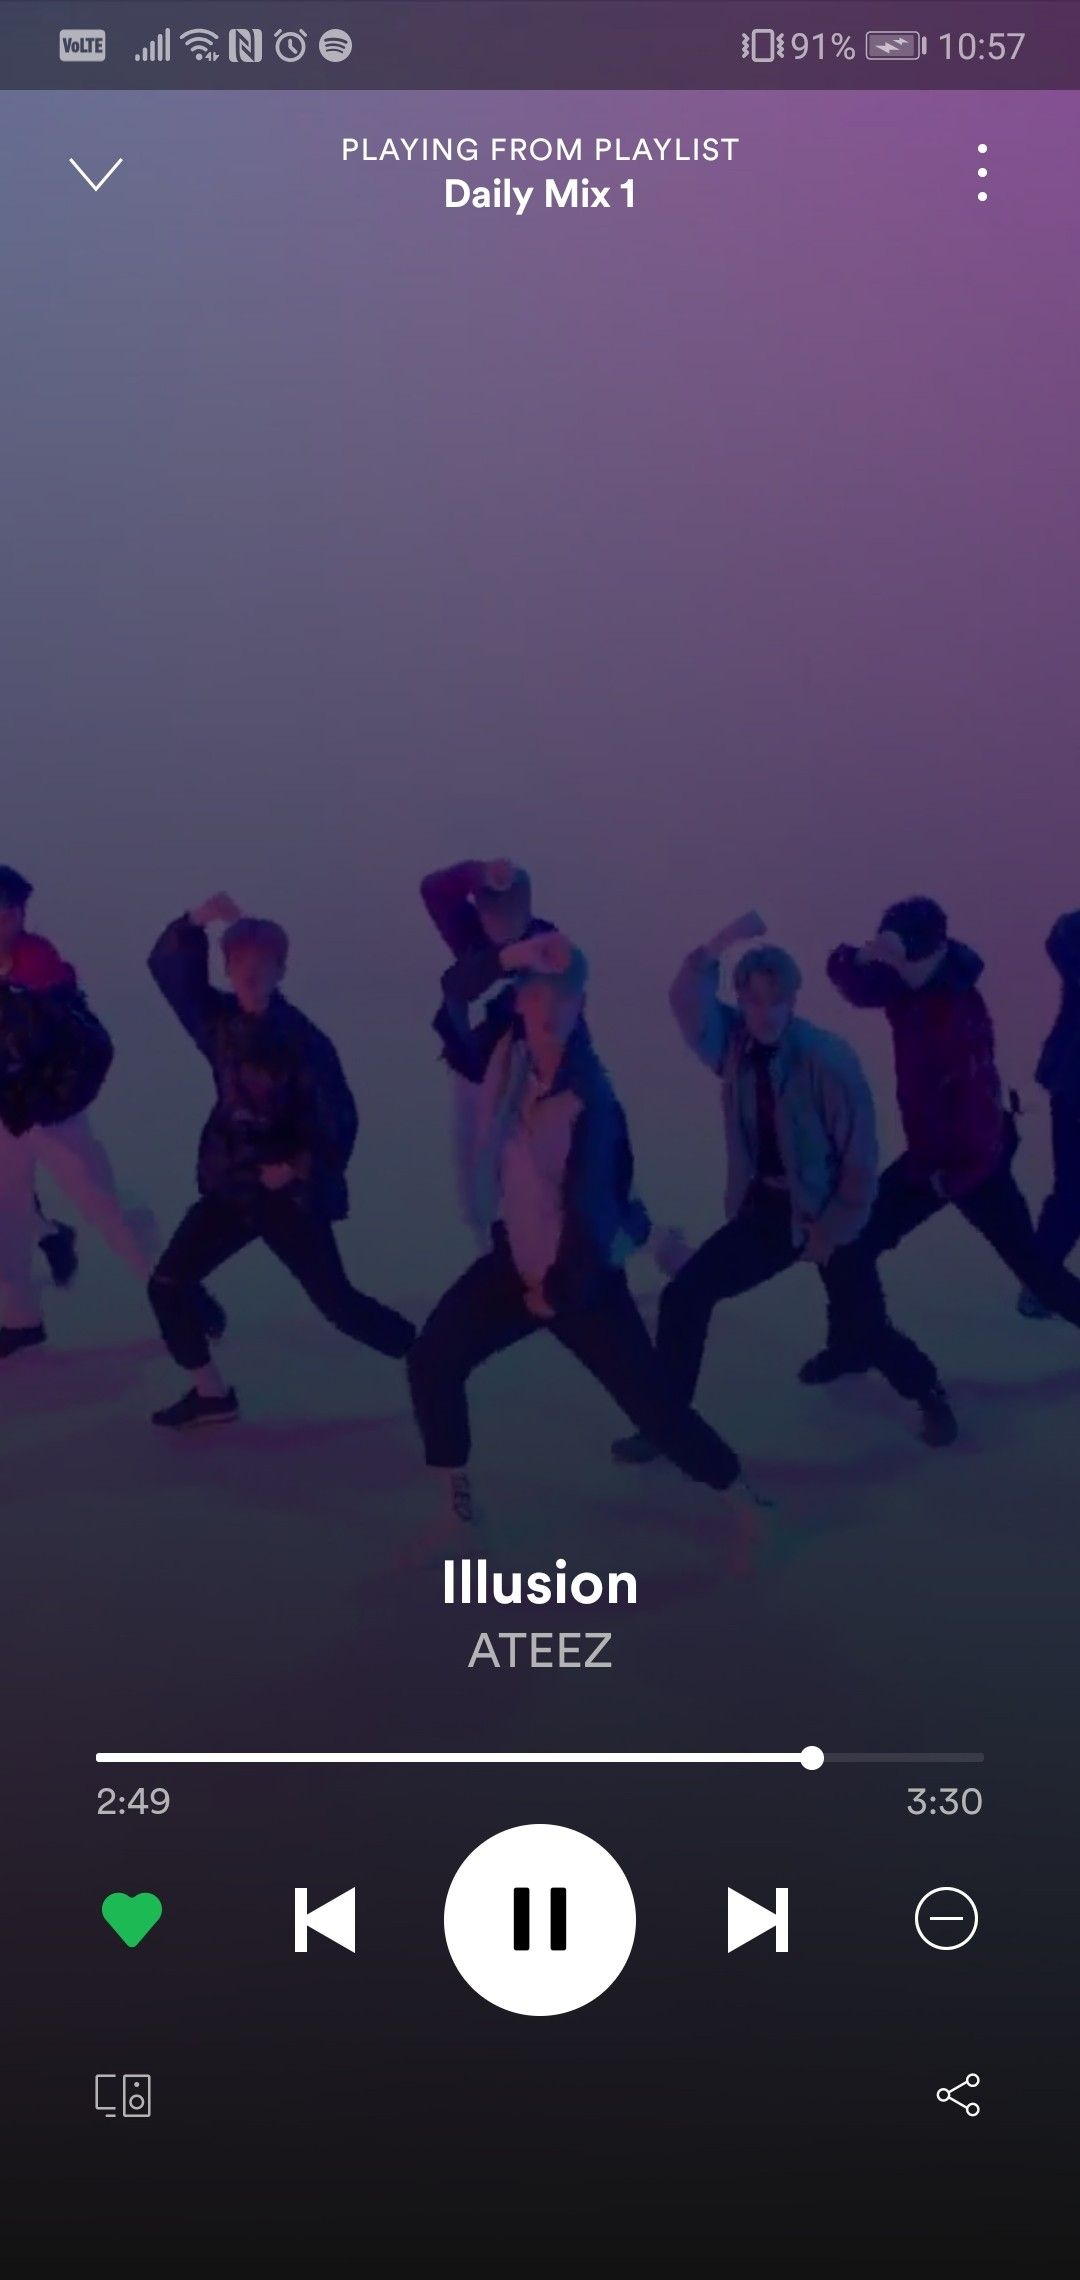 ateez kpop spotify illusion Song playlist, Songs